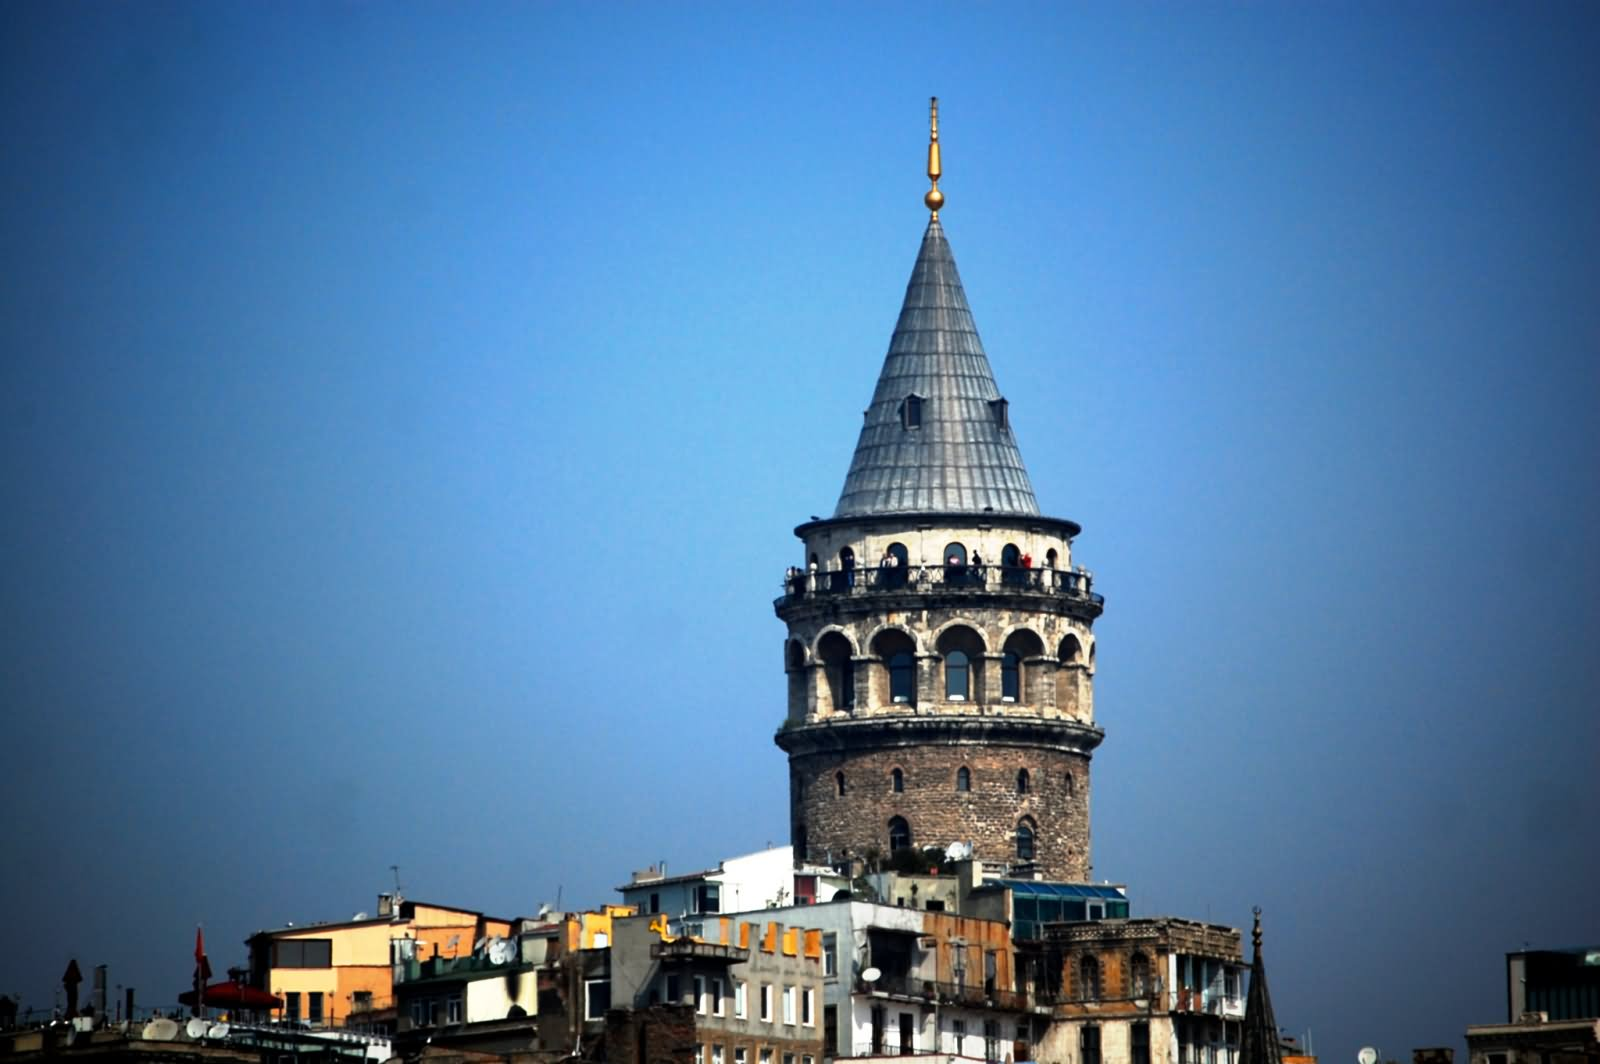 35 Very Beautiful Galata Tower In Istanbul Pictures And Images